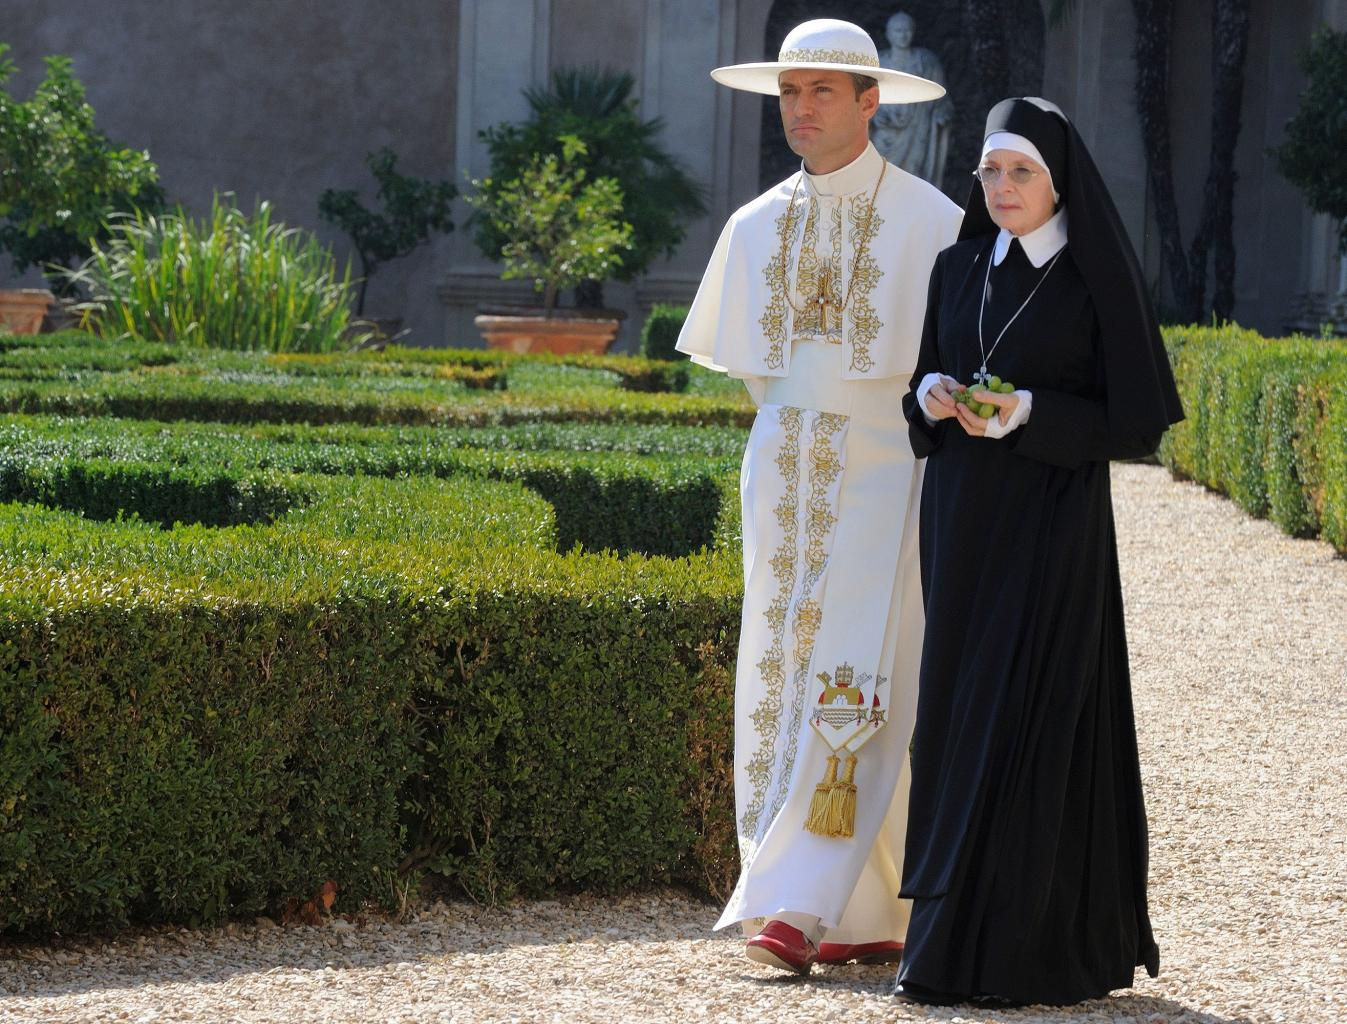 Jude Law and Diane Keaton Star as Sexy Pontiff and Spiritual Sidekick in HBO  's The Young Pope